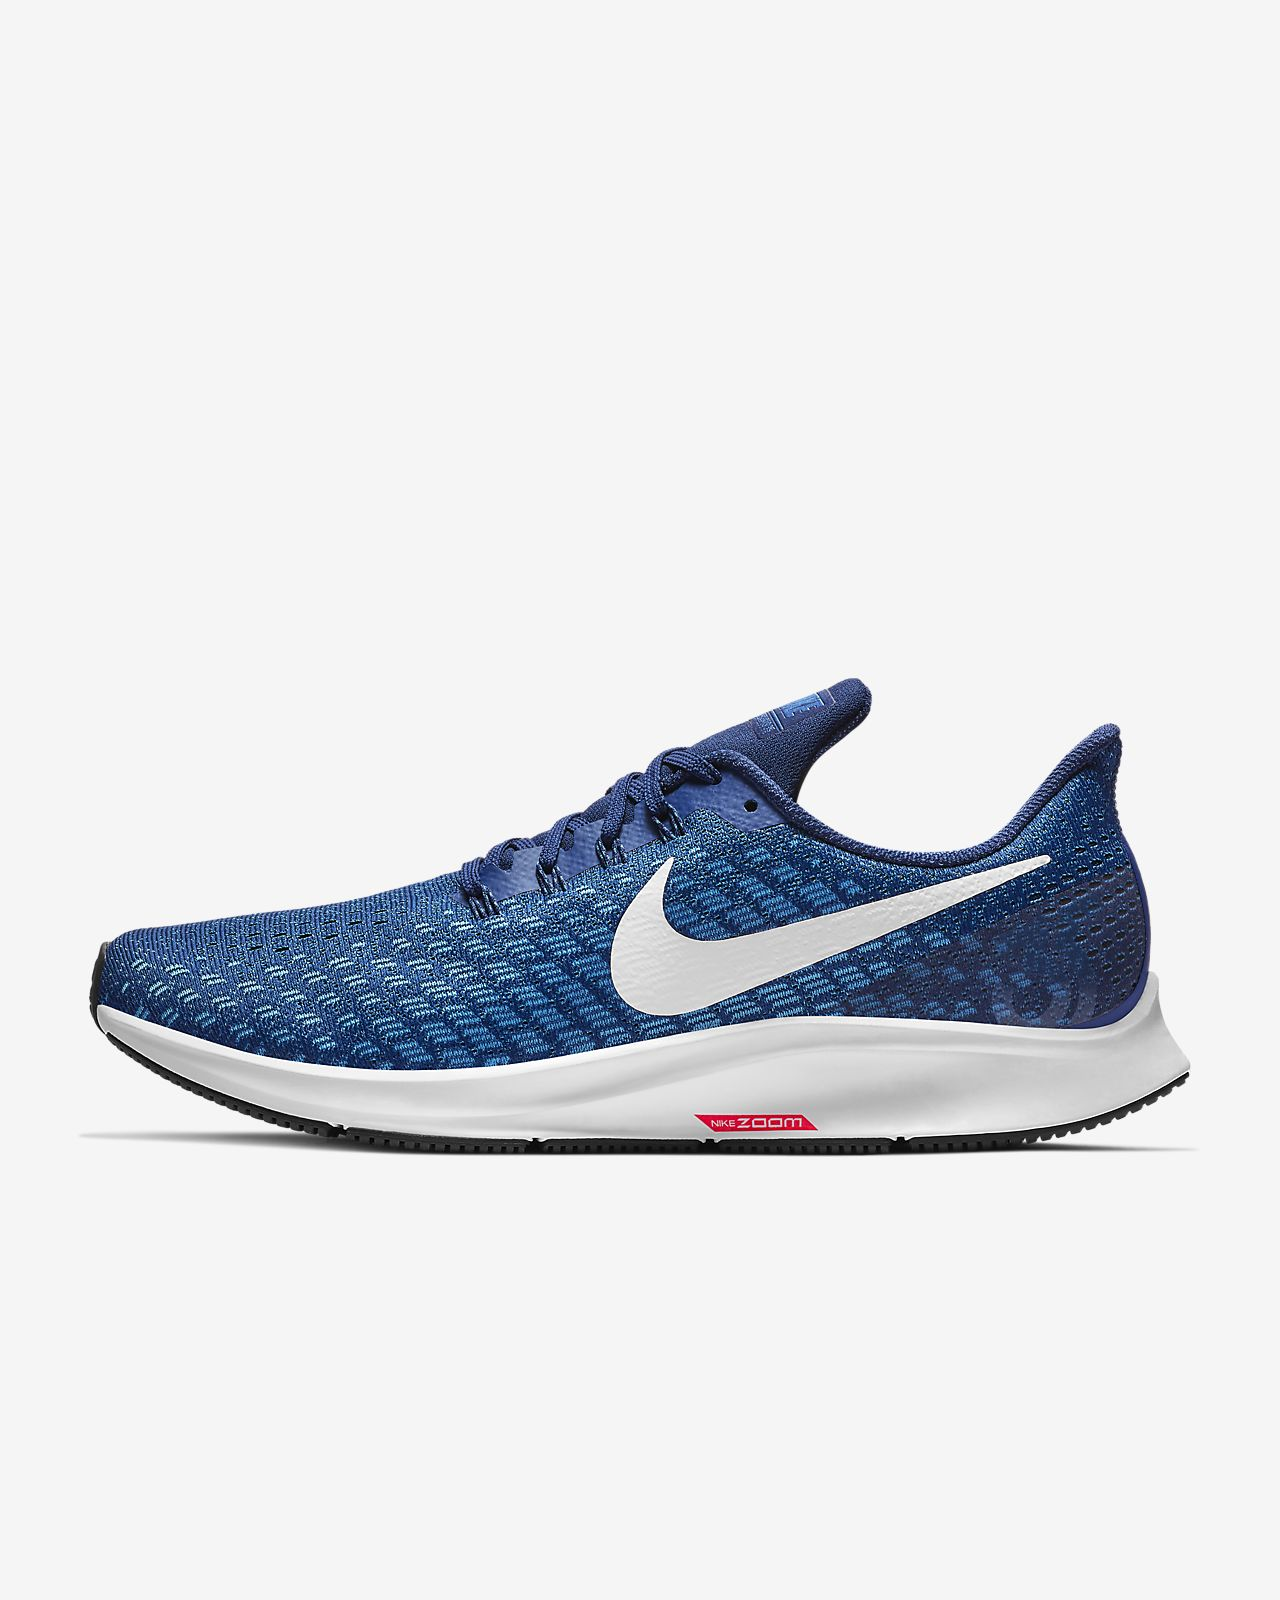 9f6eb6a16d9 Nike Air Zoom Pegasus 35 Men's Running Shoe. Nike.com IN